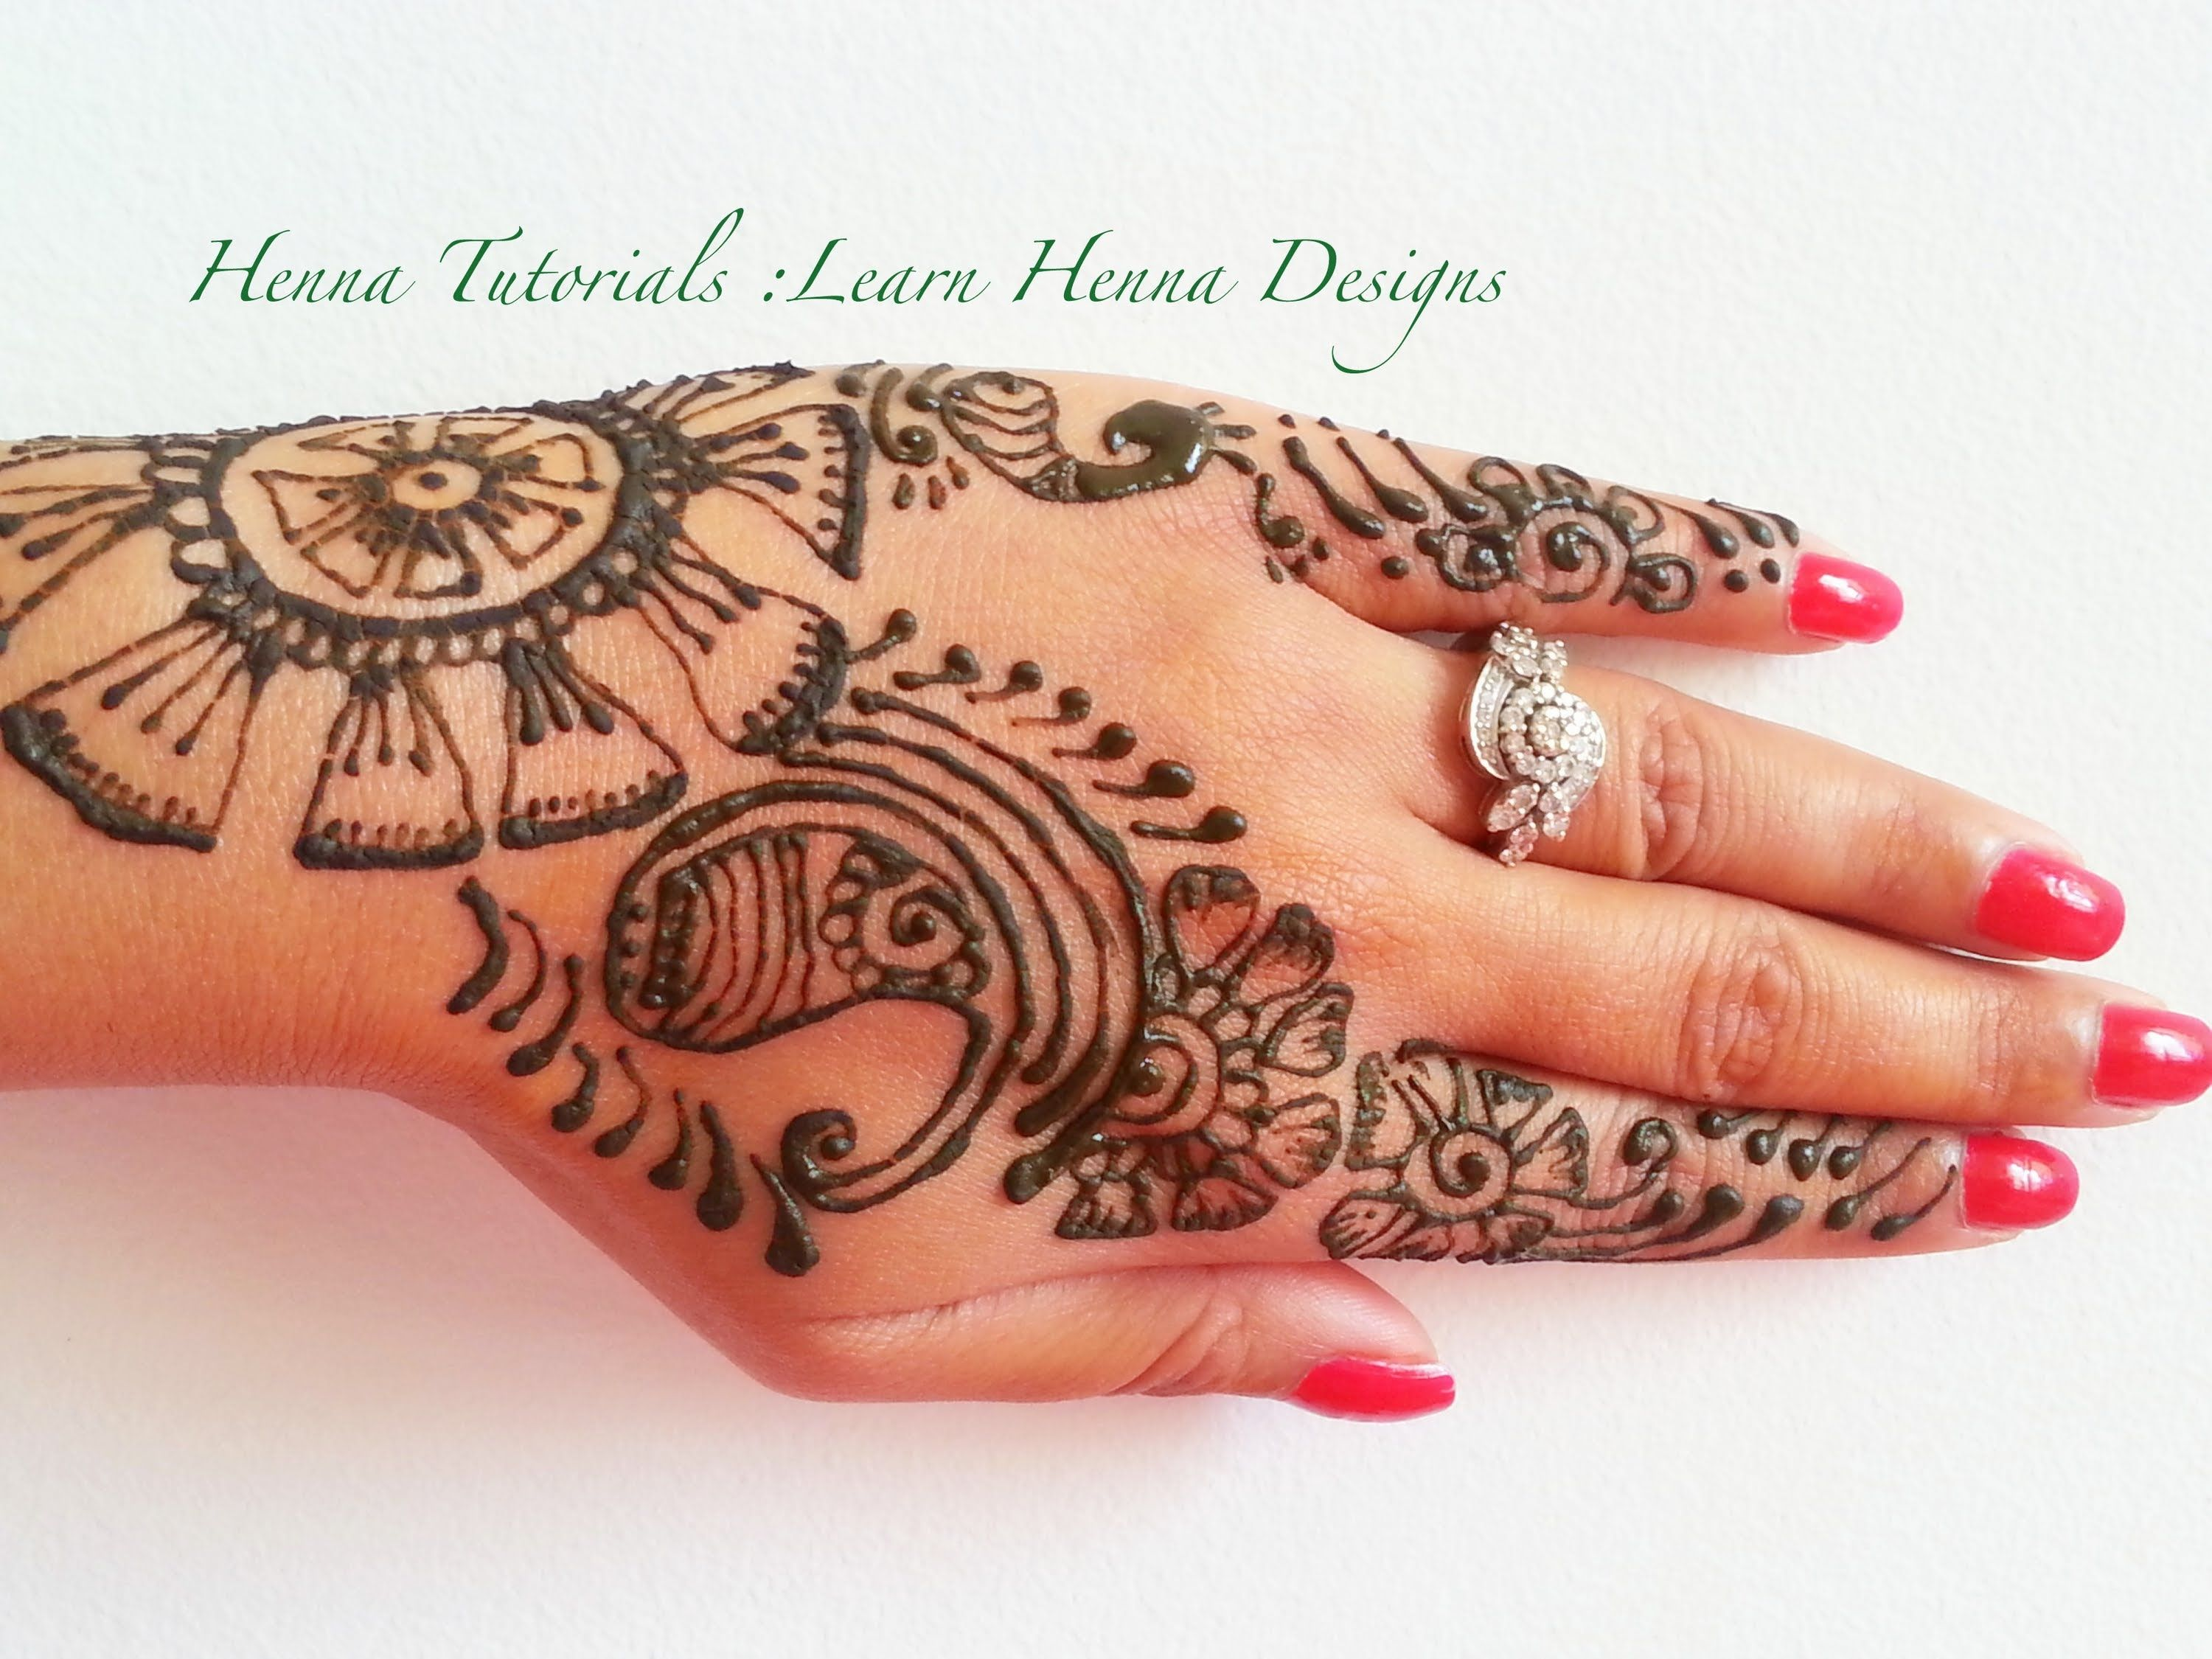 Learn Mehndi Patterns : How to make henna designs step by tutorial learn